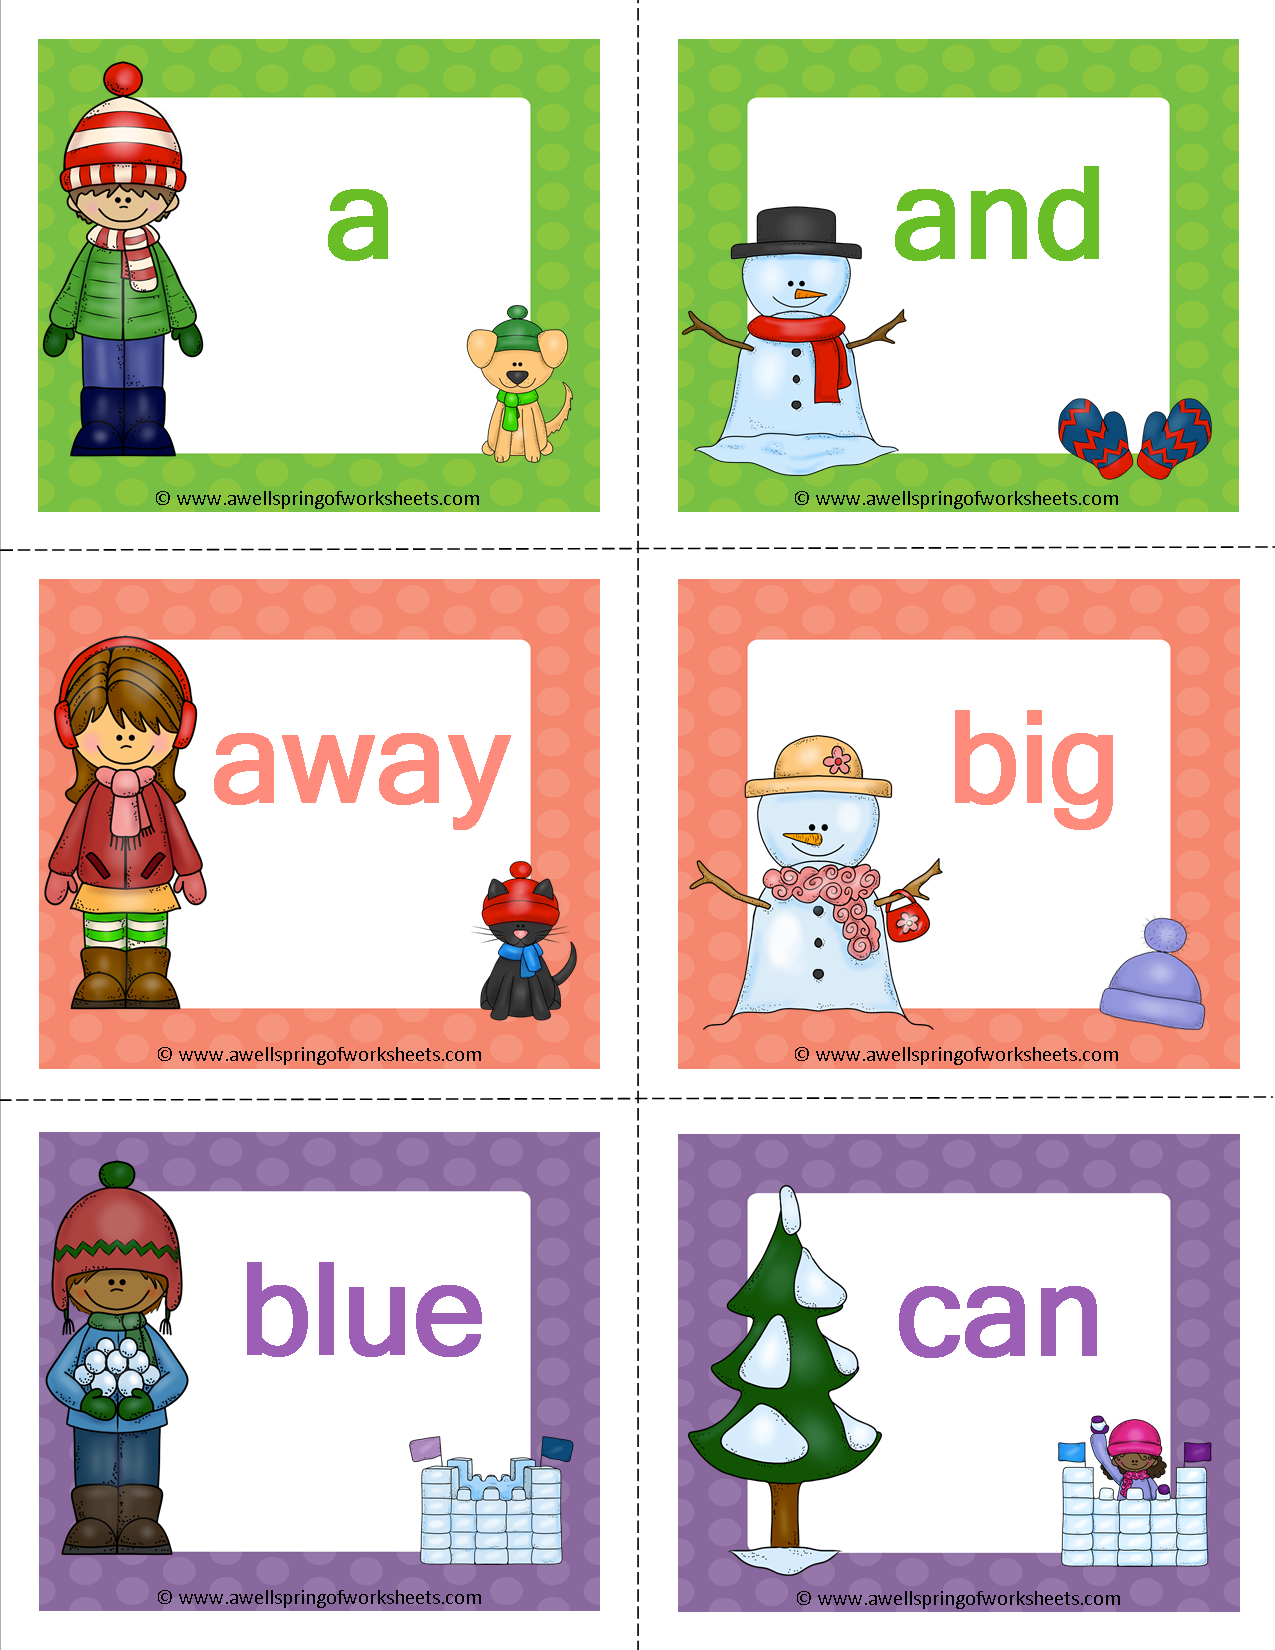 Worksheets by Subject | Pinterest | Sight word flashcards, Language ...